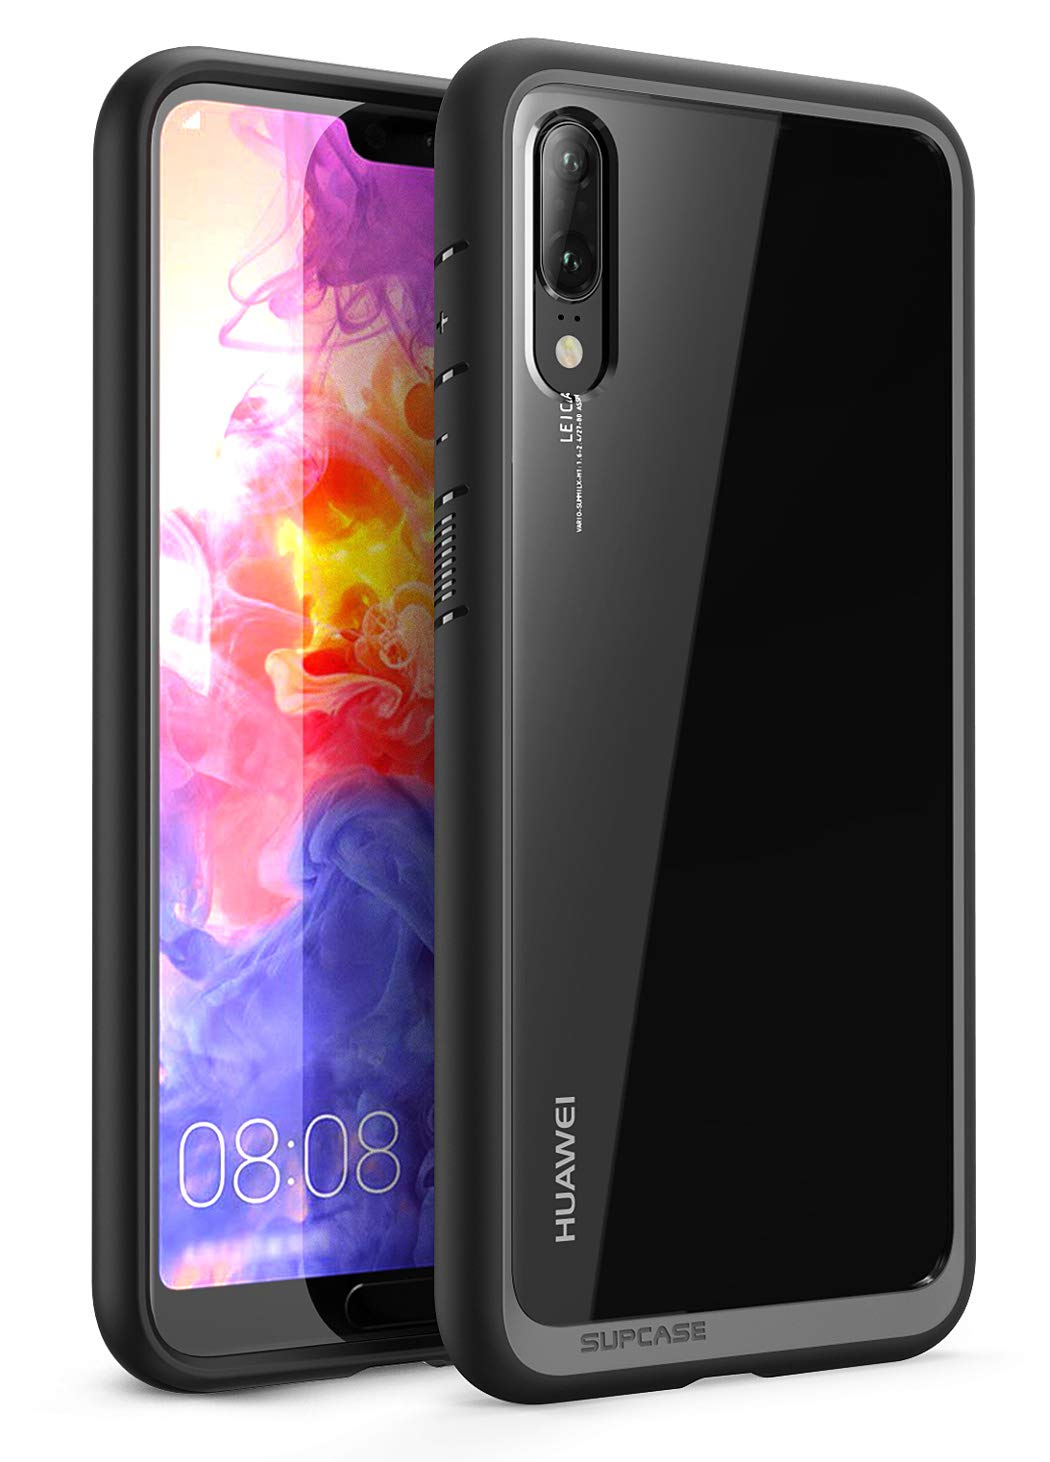 SUPCASE Unicorn Beetle Style Series Case for Huawei P20, Premium Hybrid Protective Clear Case for Huawei P20 (2018 Release) Not for Huawei P20 Pro, Retail Package (Black)